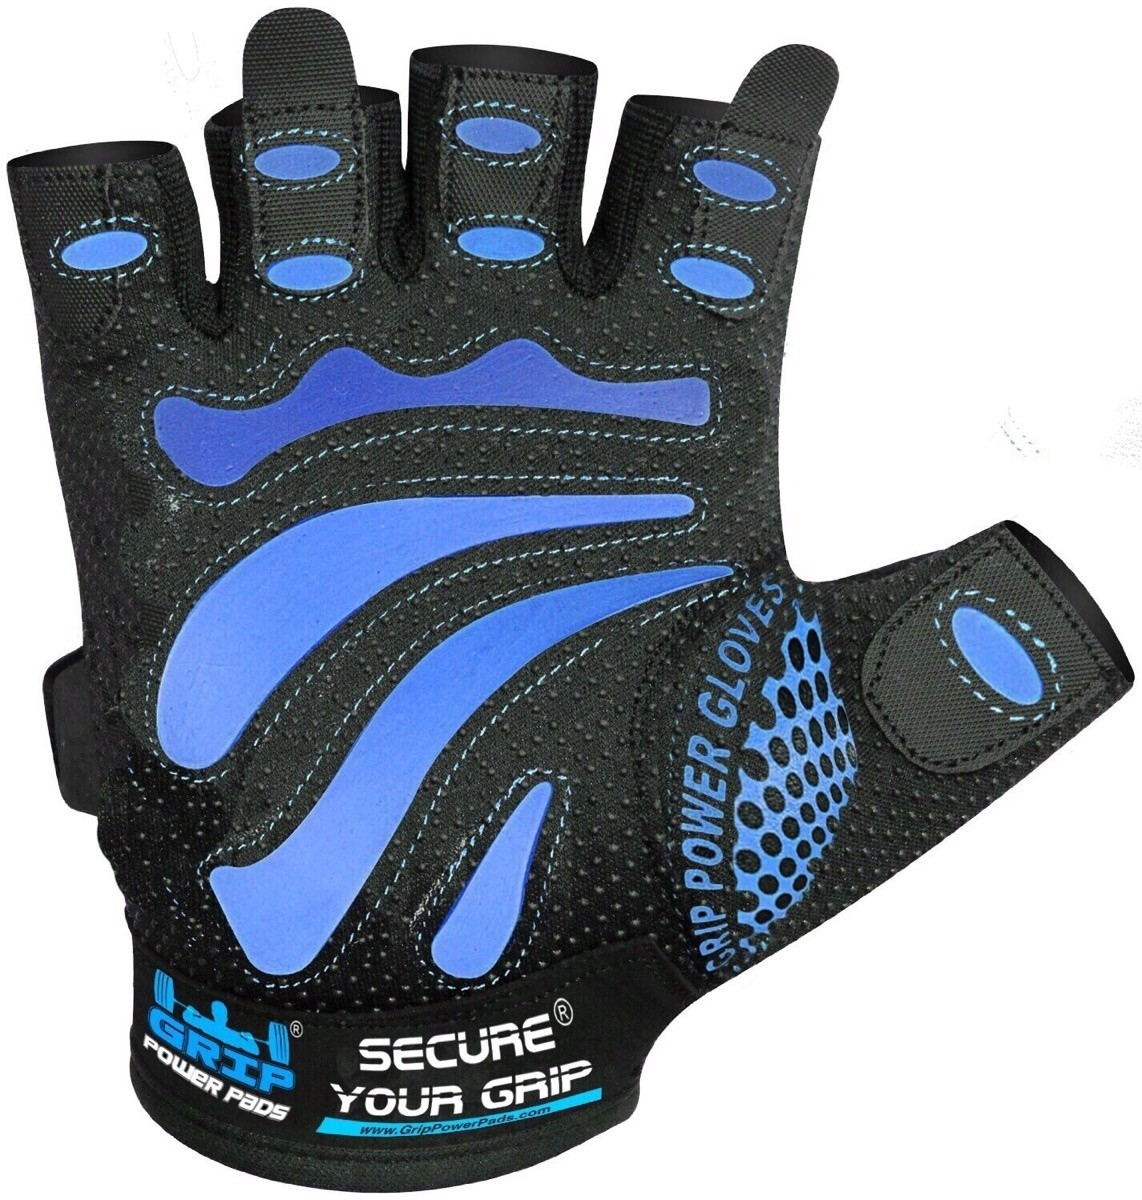 Gym Gloves Protect Your Hands & Improve Your Grip Weightlifting Grips